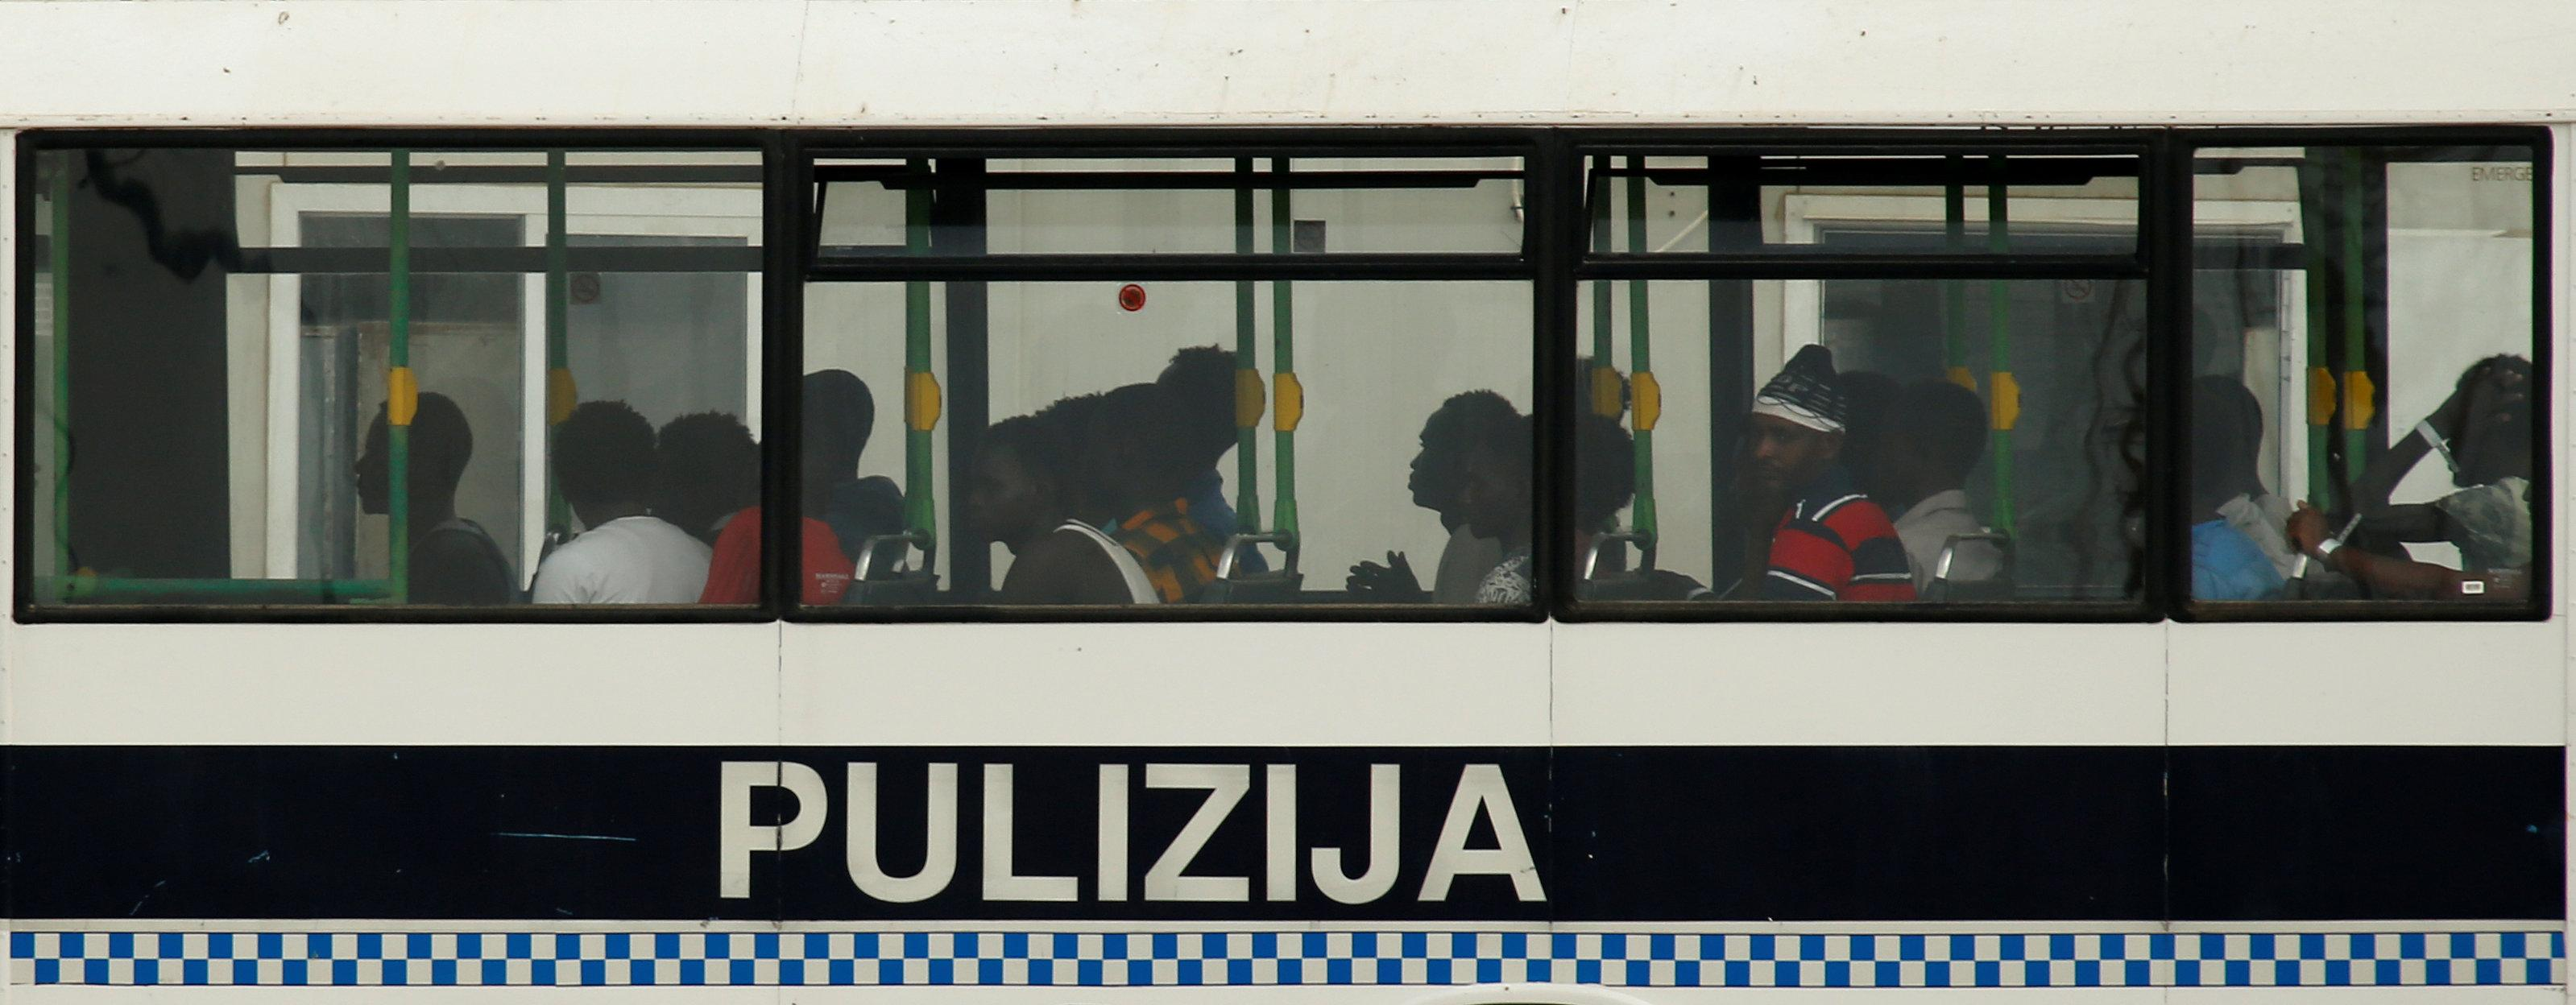 Migrants who were rescued by the Armed Forces of Malta (AFM) some 53 nautical miles south of Malta sit in a police bus as it leaves the AFM maritime squadron base in Valletta's Marsamxett Harbour, Malta August 13, 2018.  Darrin Zammit Lupi